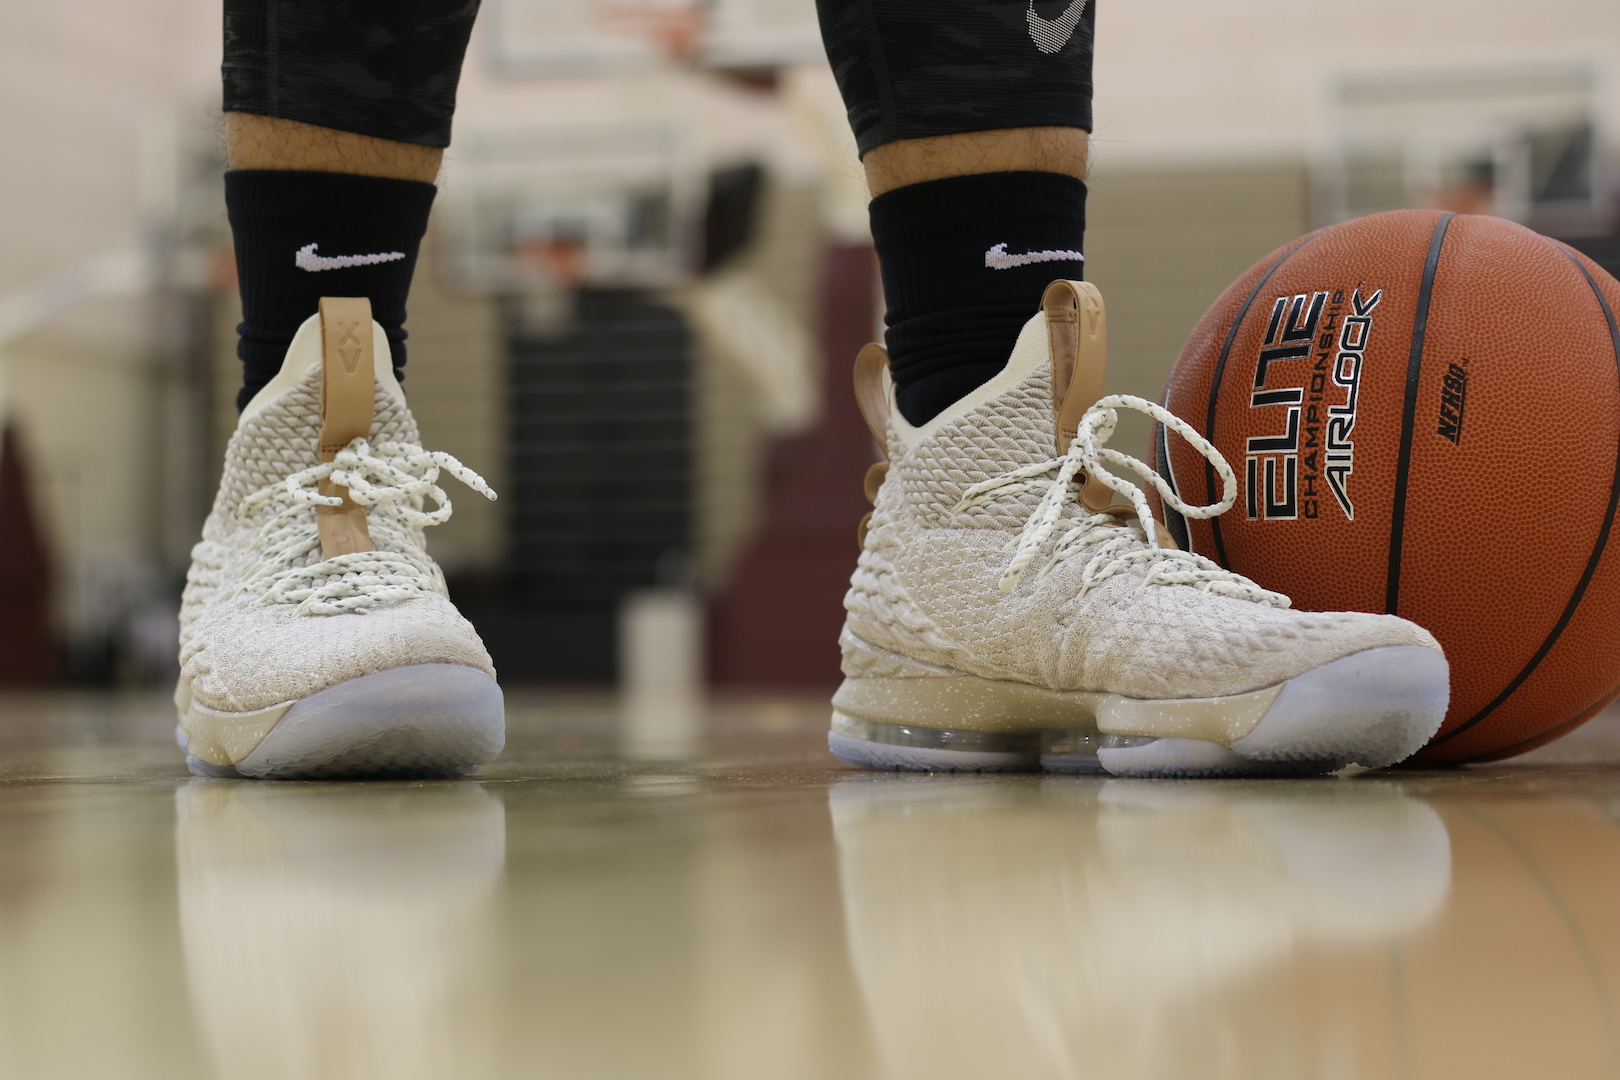 WATCH: Everything you need to know about the LeBron 15